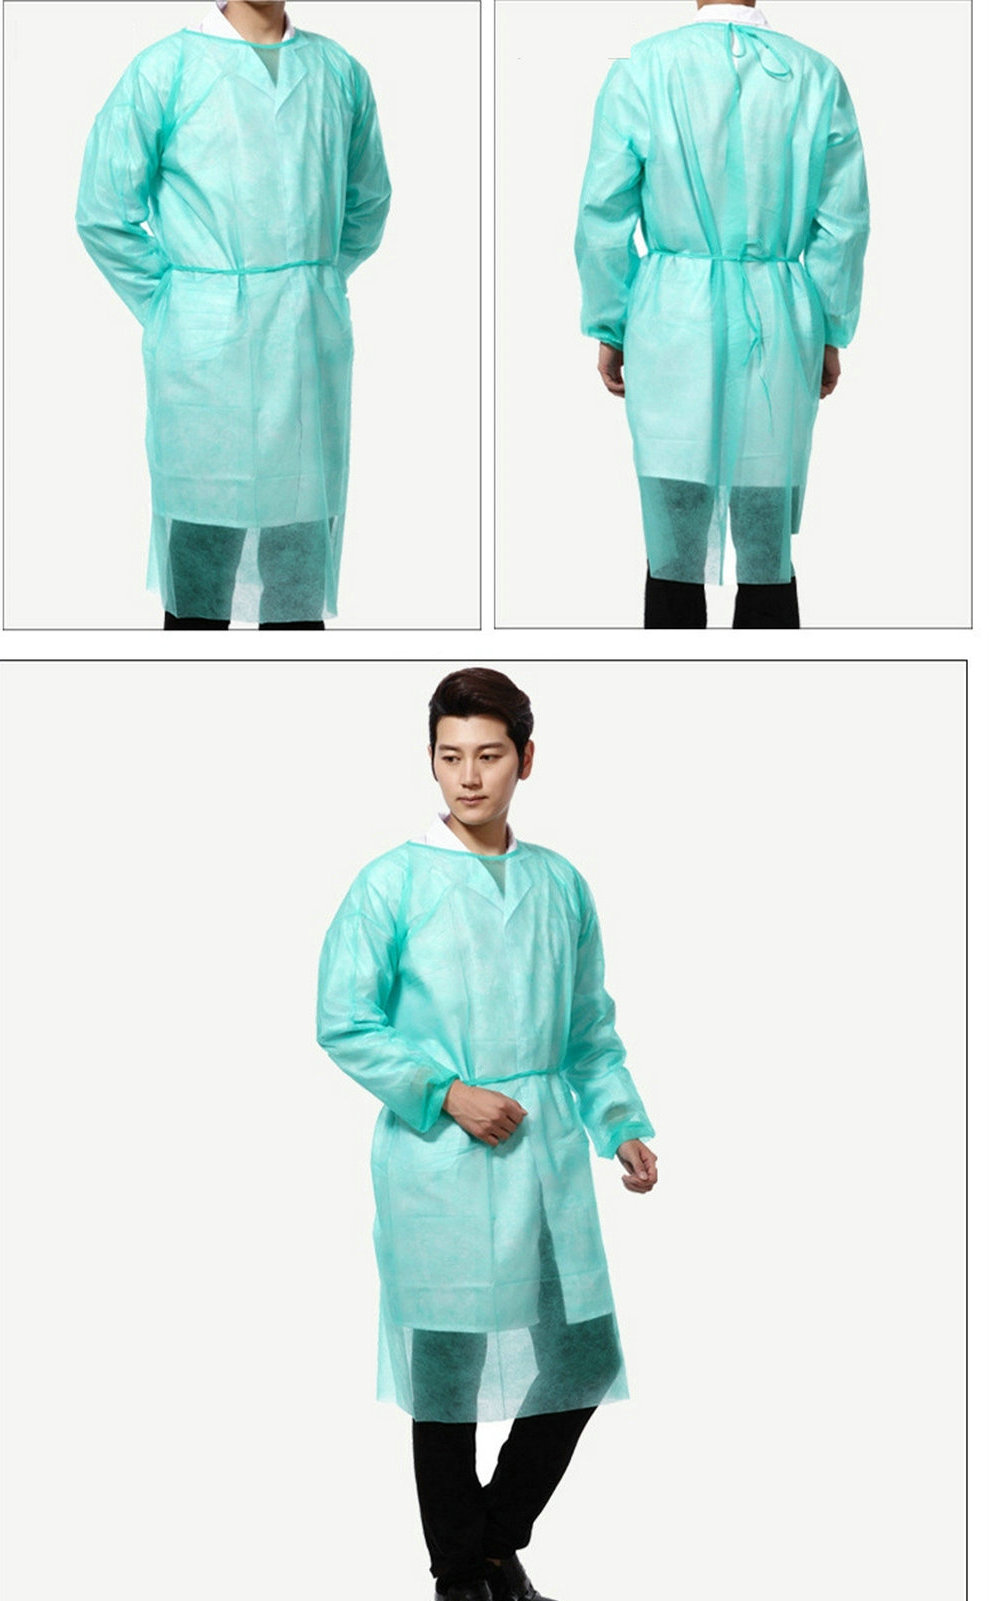 PP SMS Hospital Gowns